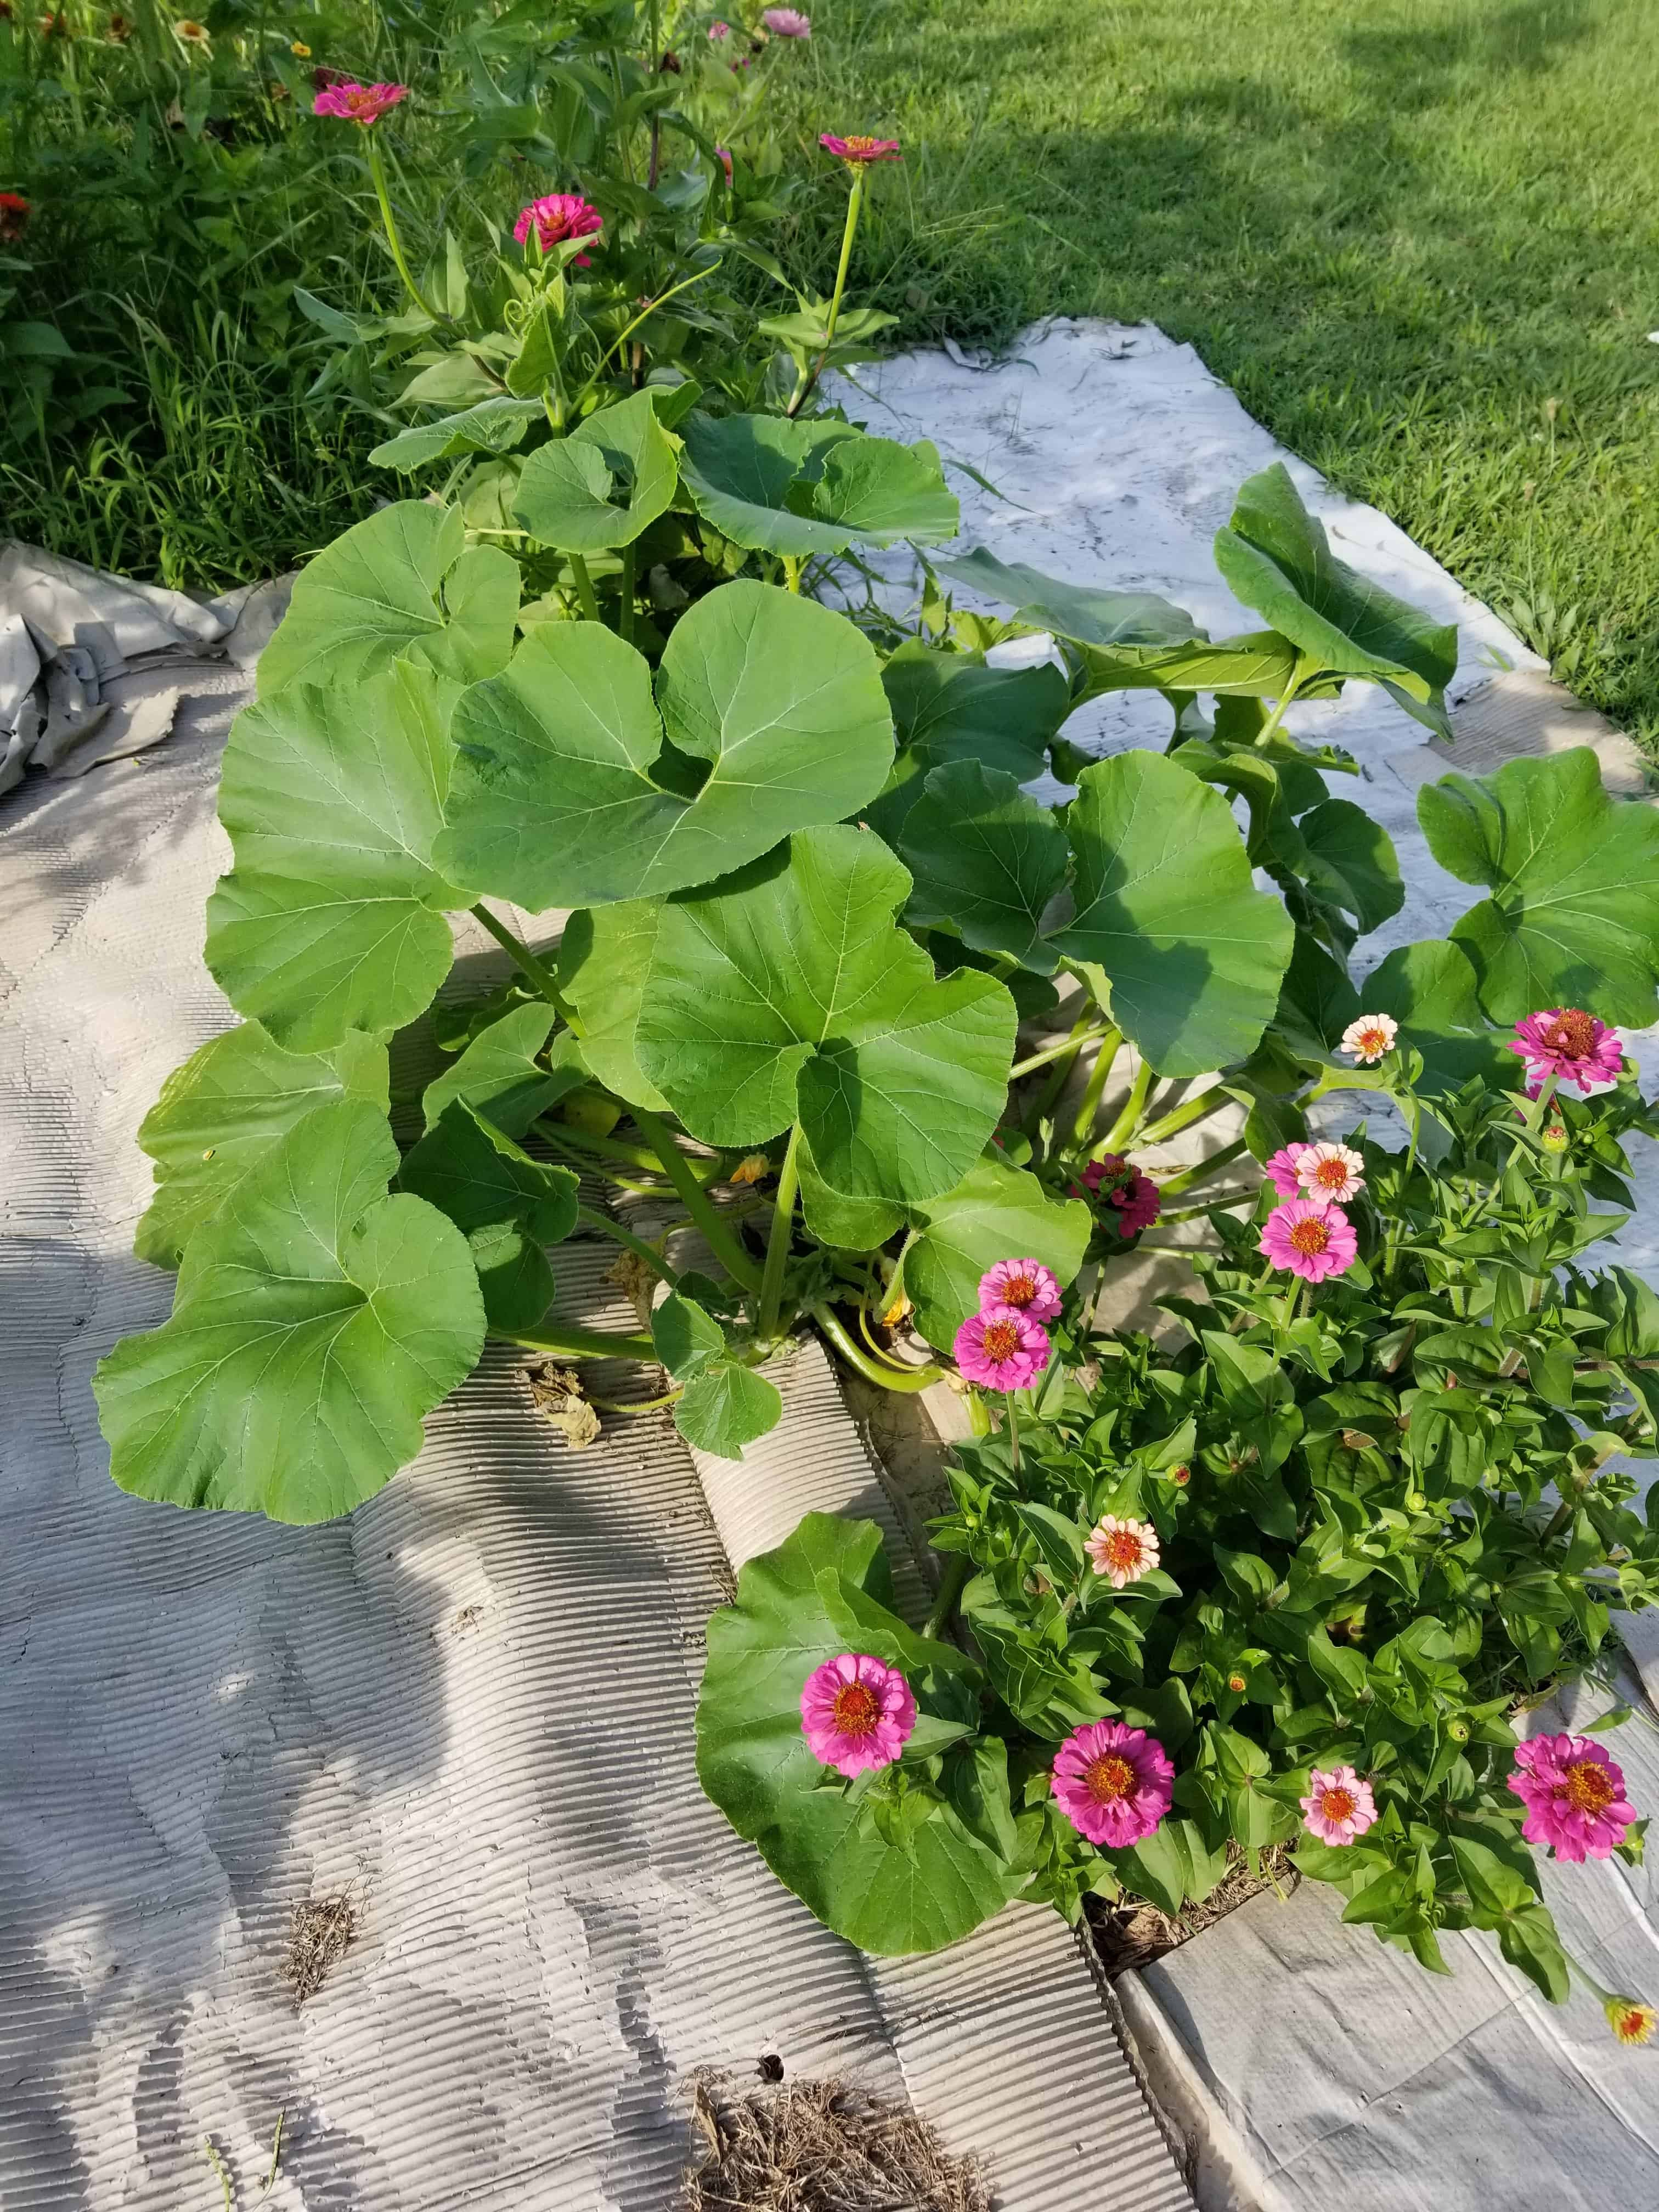 Large green pumpkin leaves and pink zinnias